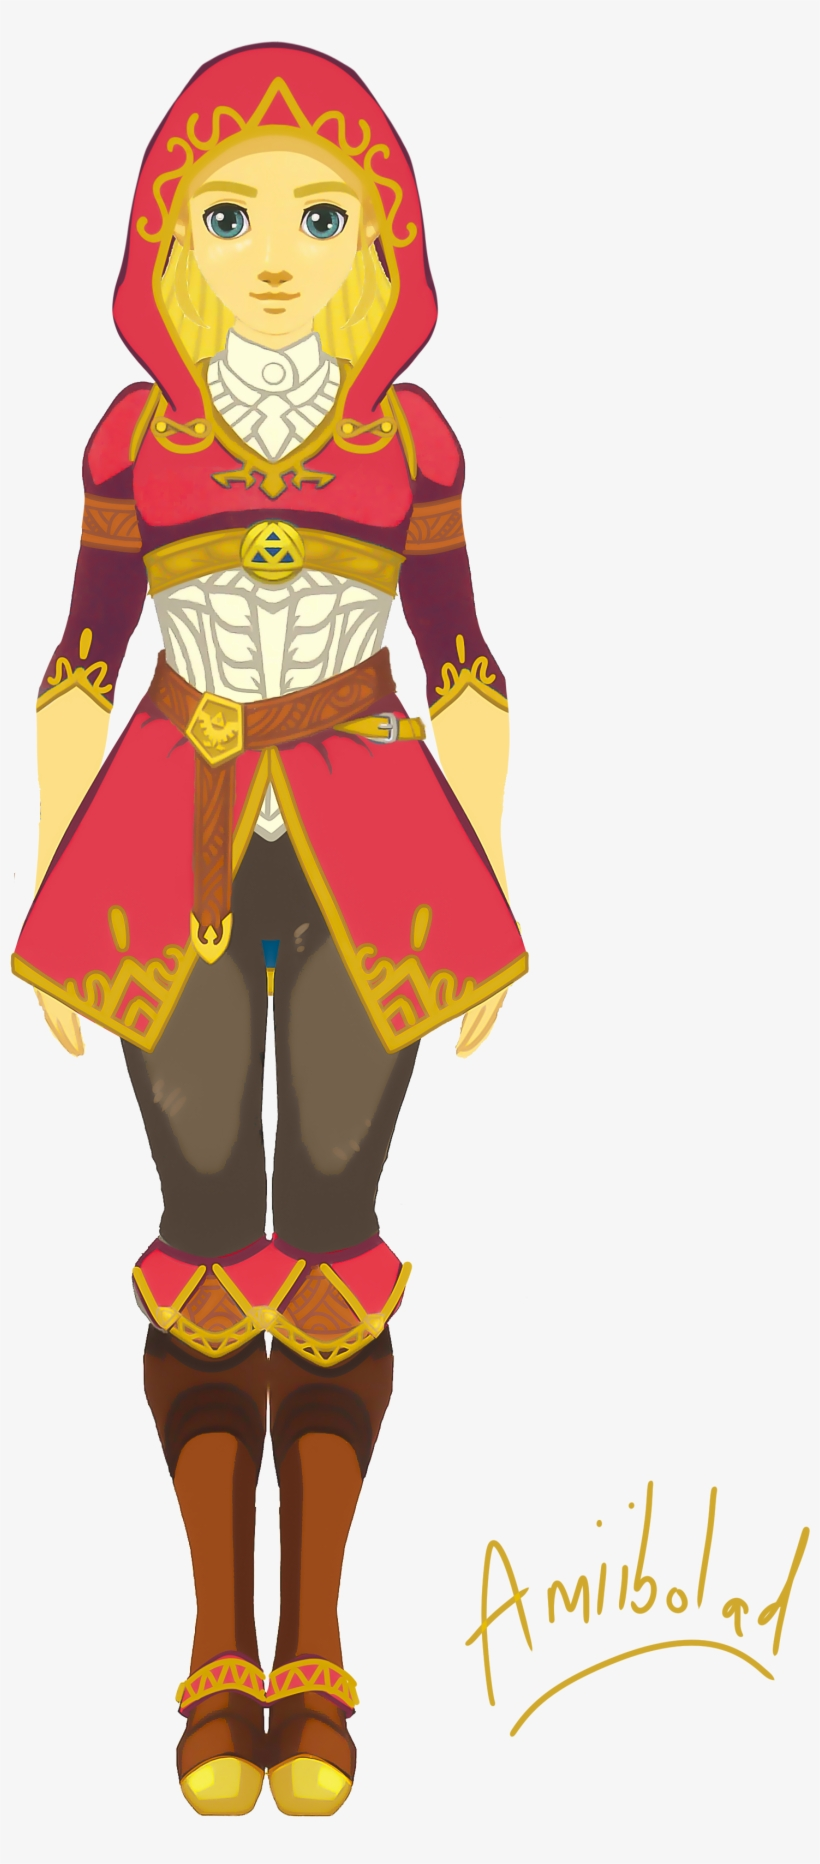 Ambitious Mod Reworks Breath Of The Wild To Make Zelda - Legend Of Zelda Breath Of The Wild Zelda Mod, transparent png #3758941